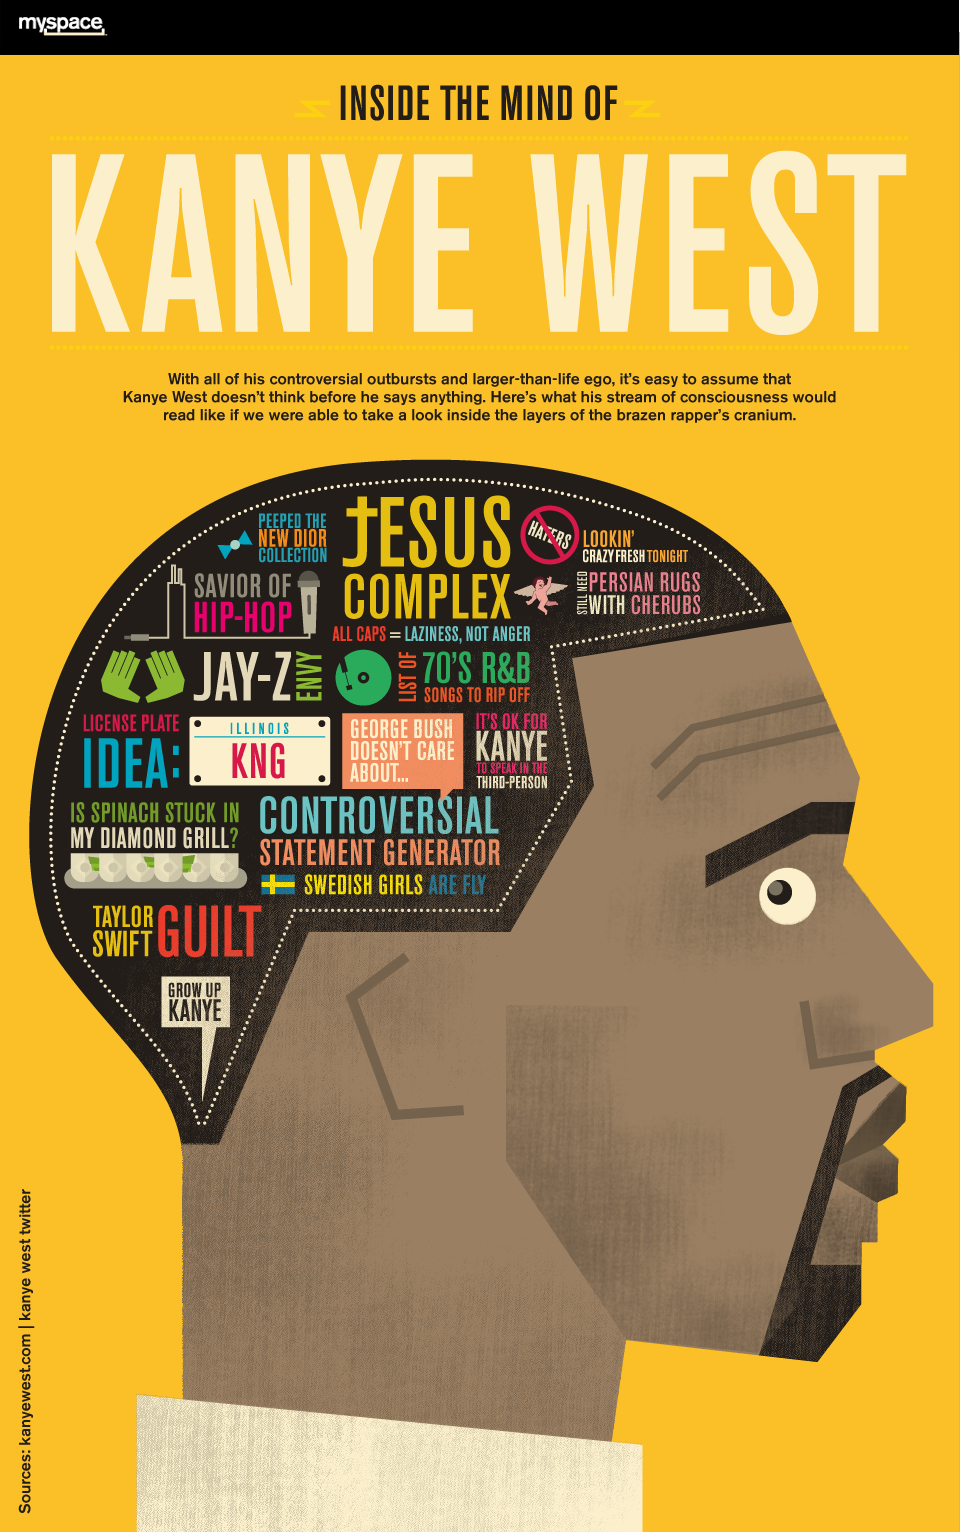 Infographic: Inside the Mind of Kanye West